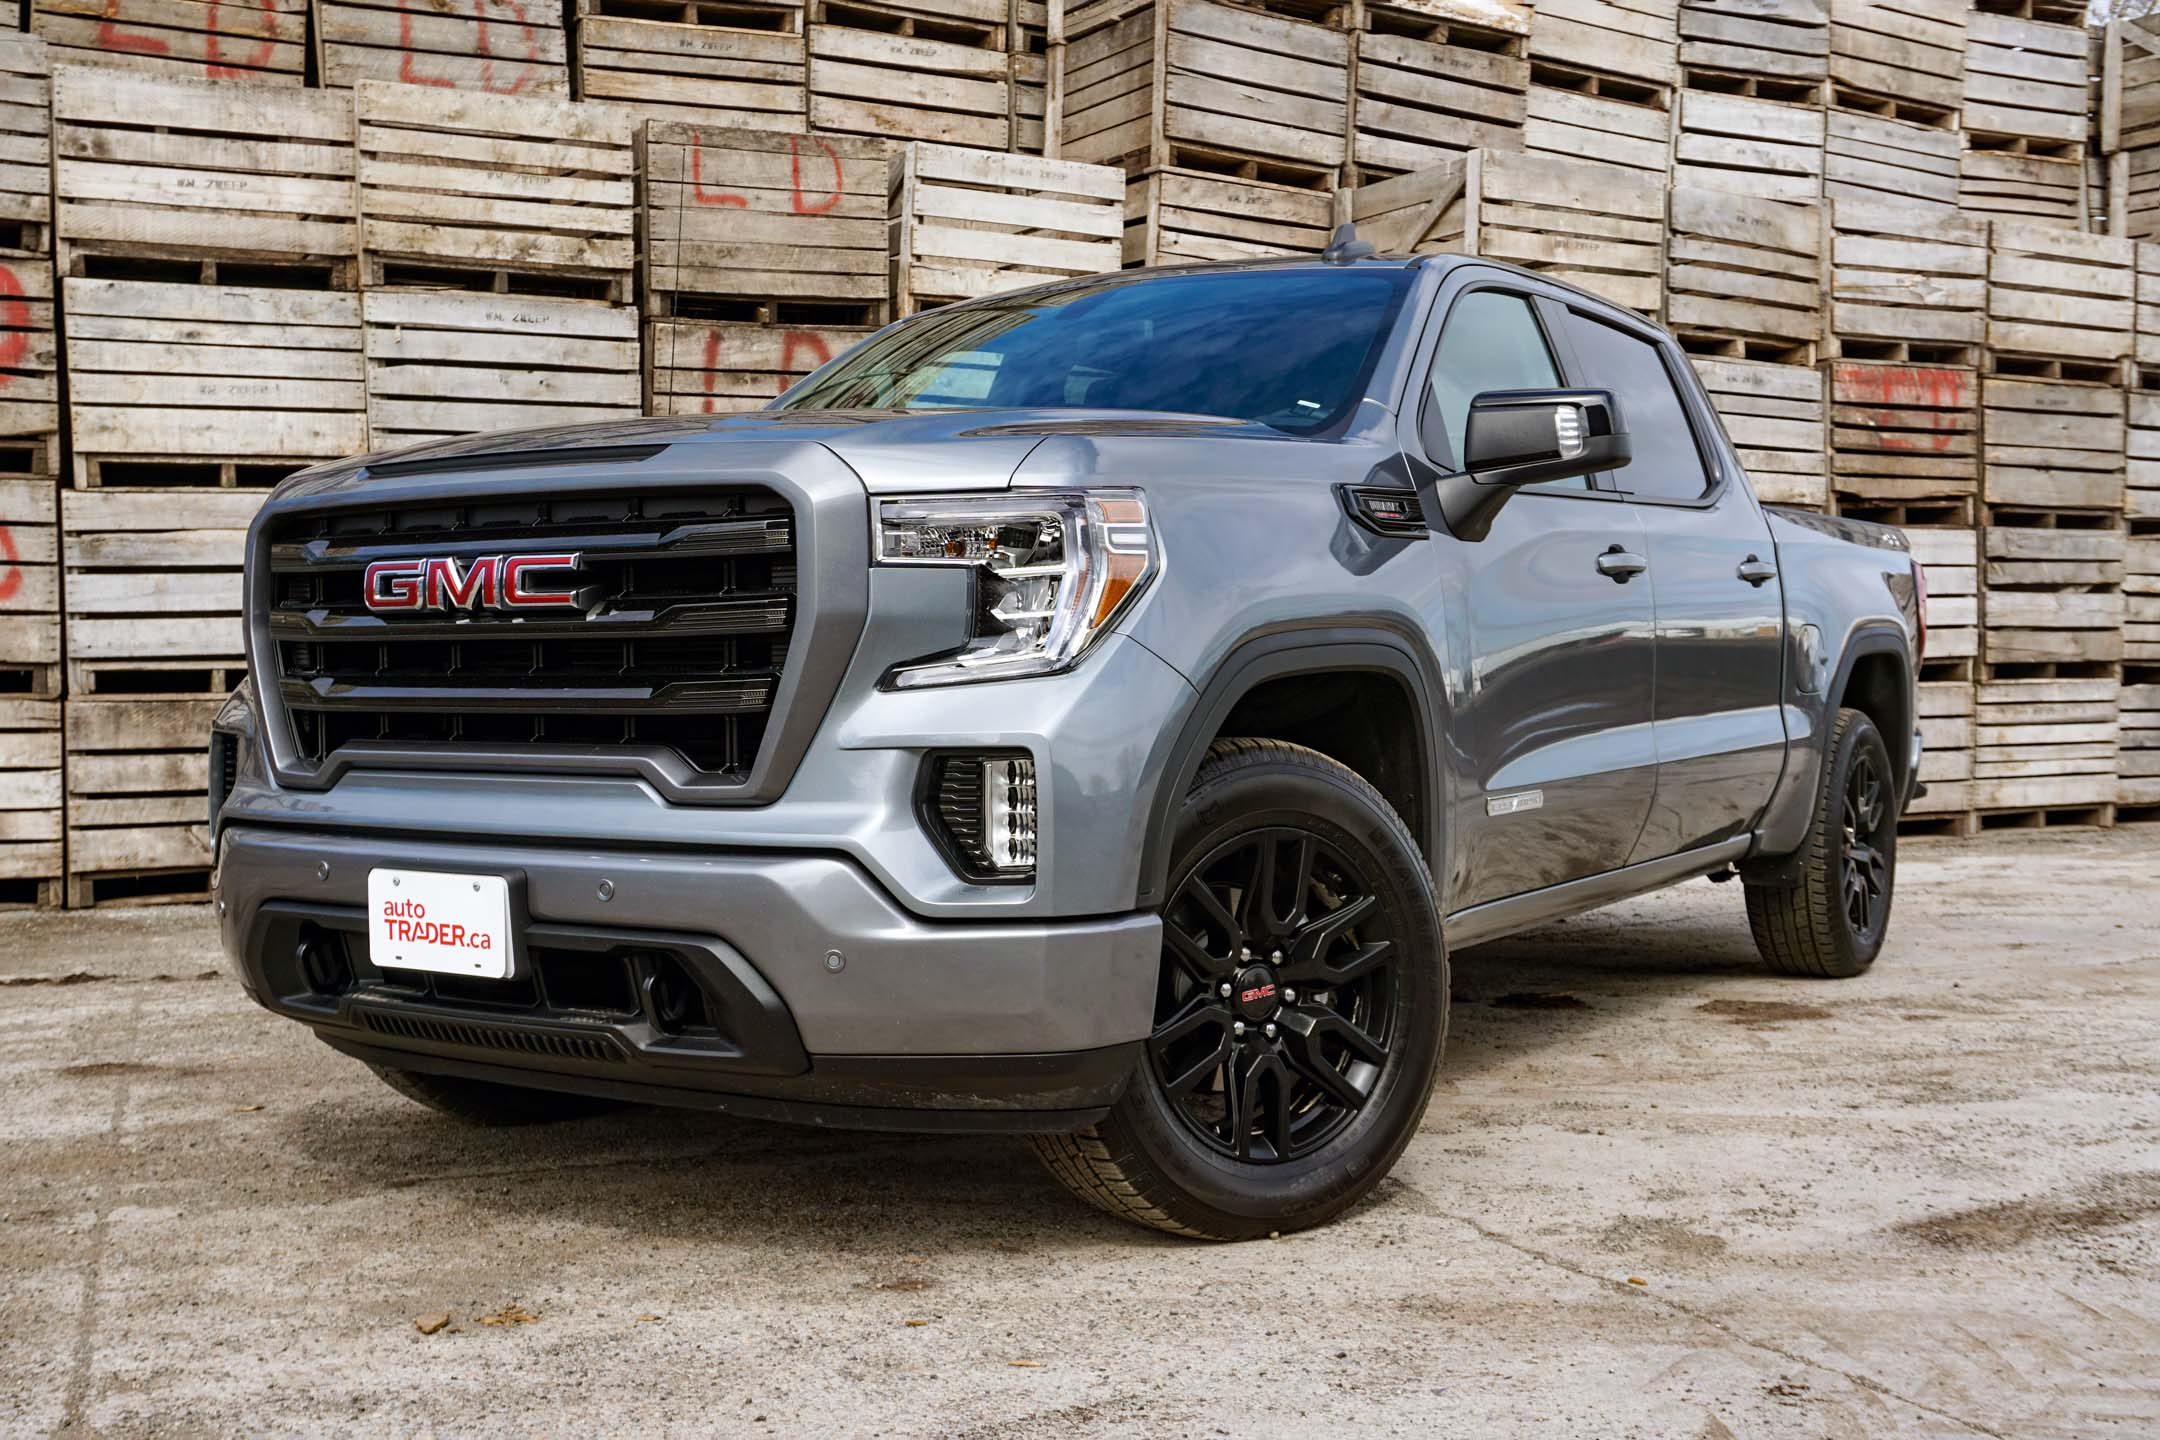 2020 Gmc Sierra Diesel Review And Video Expert Reviews Autotrader Ca